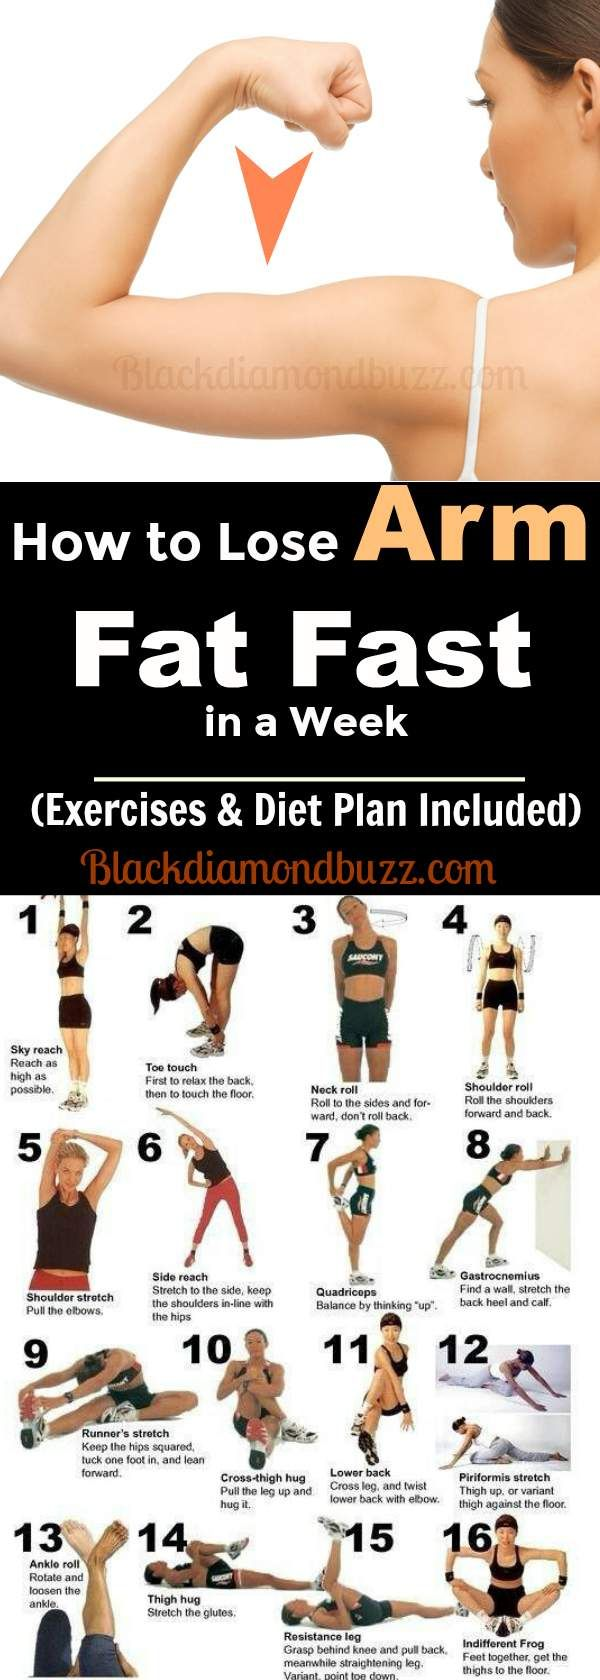 Pin on Health & Fitness